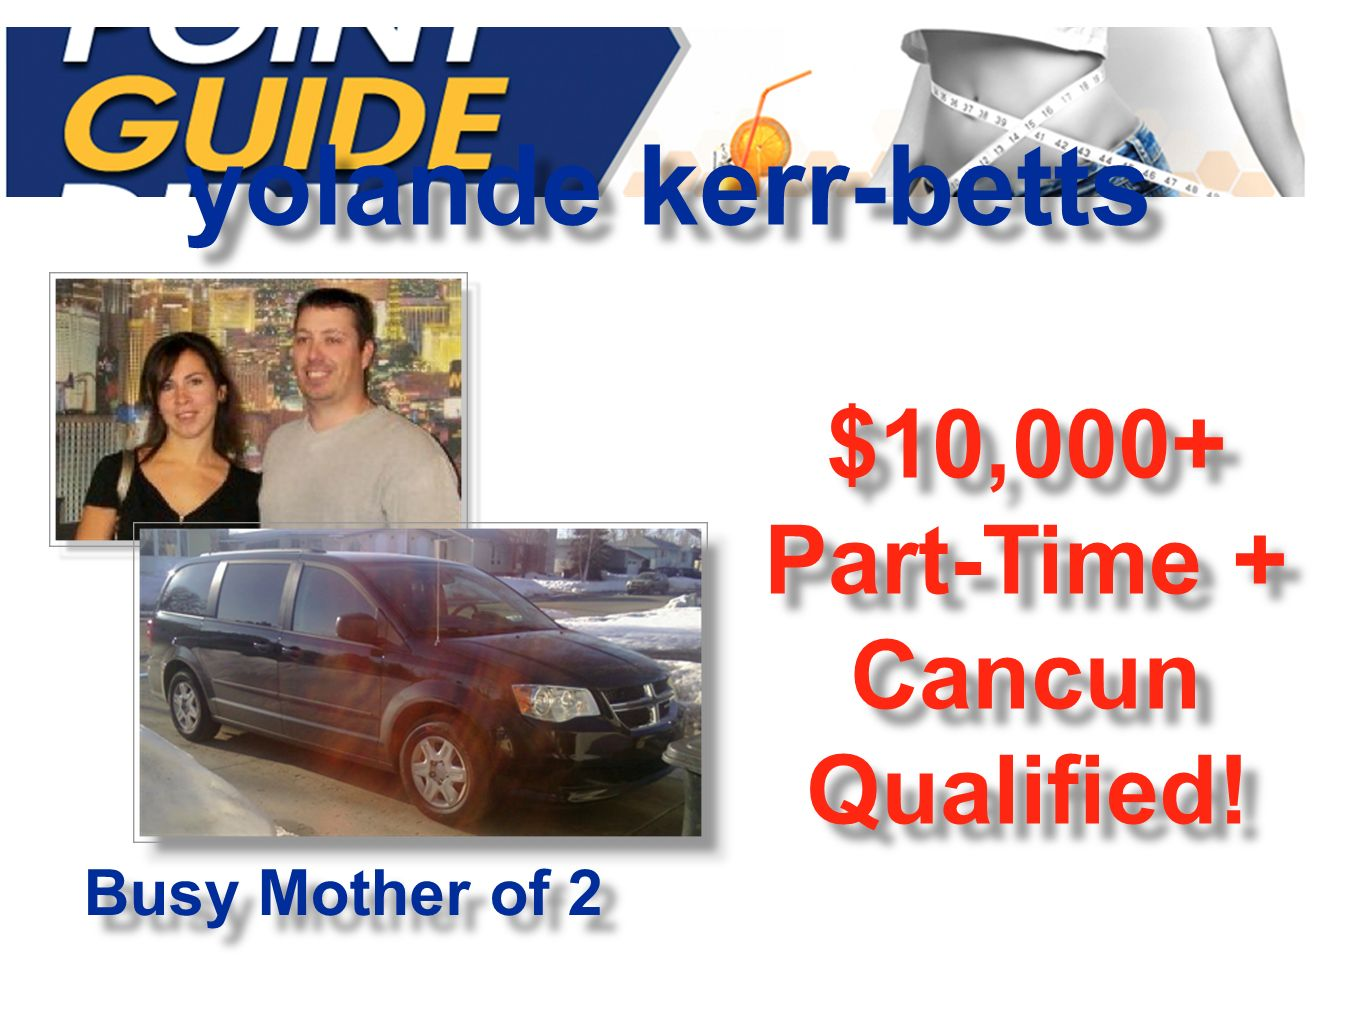 yolande kerr-betts $10,000+ Part-Time + Cancun Qualified! Busy Mother of 2